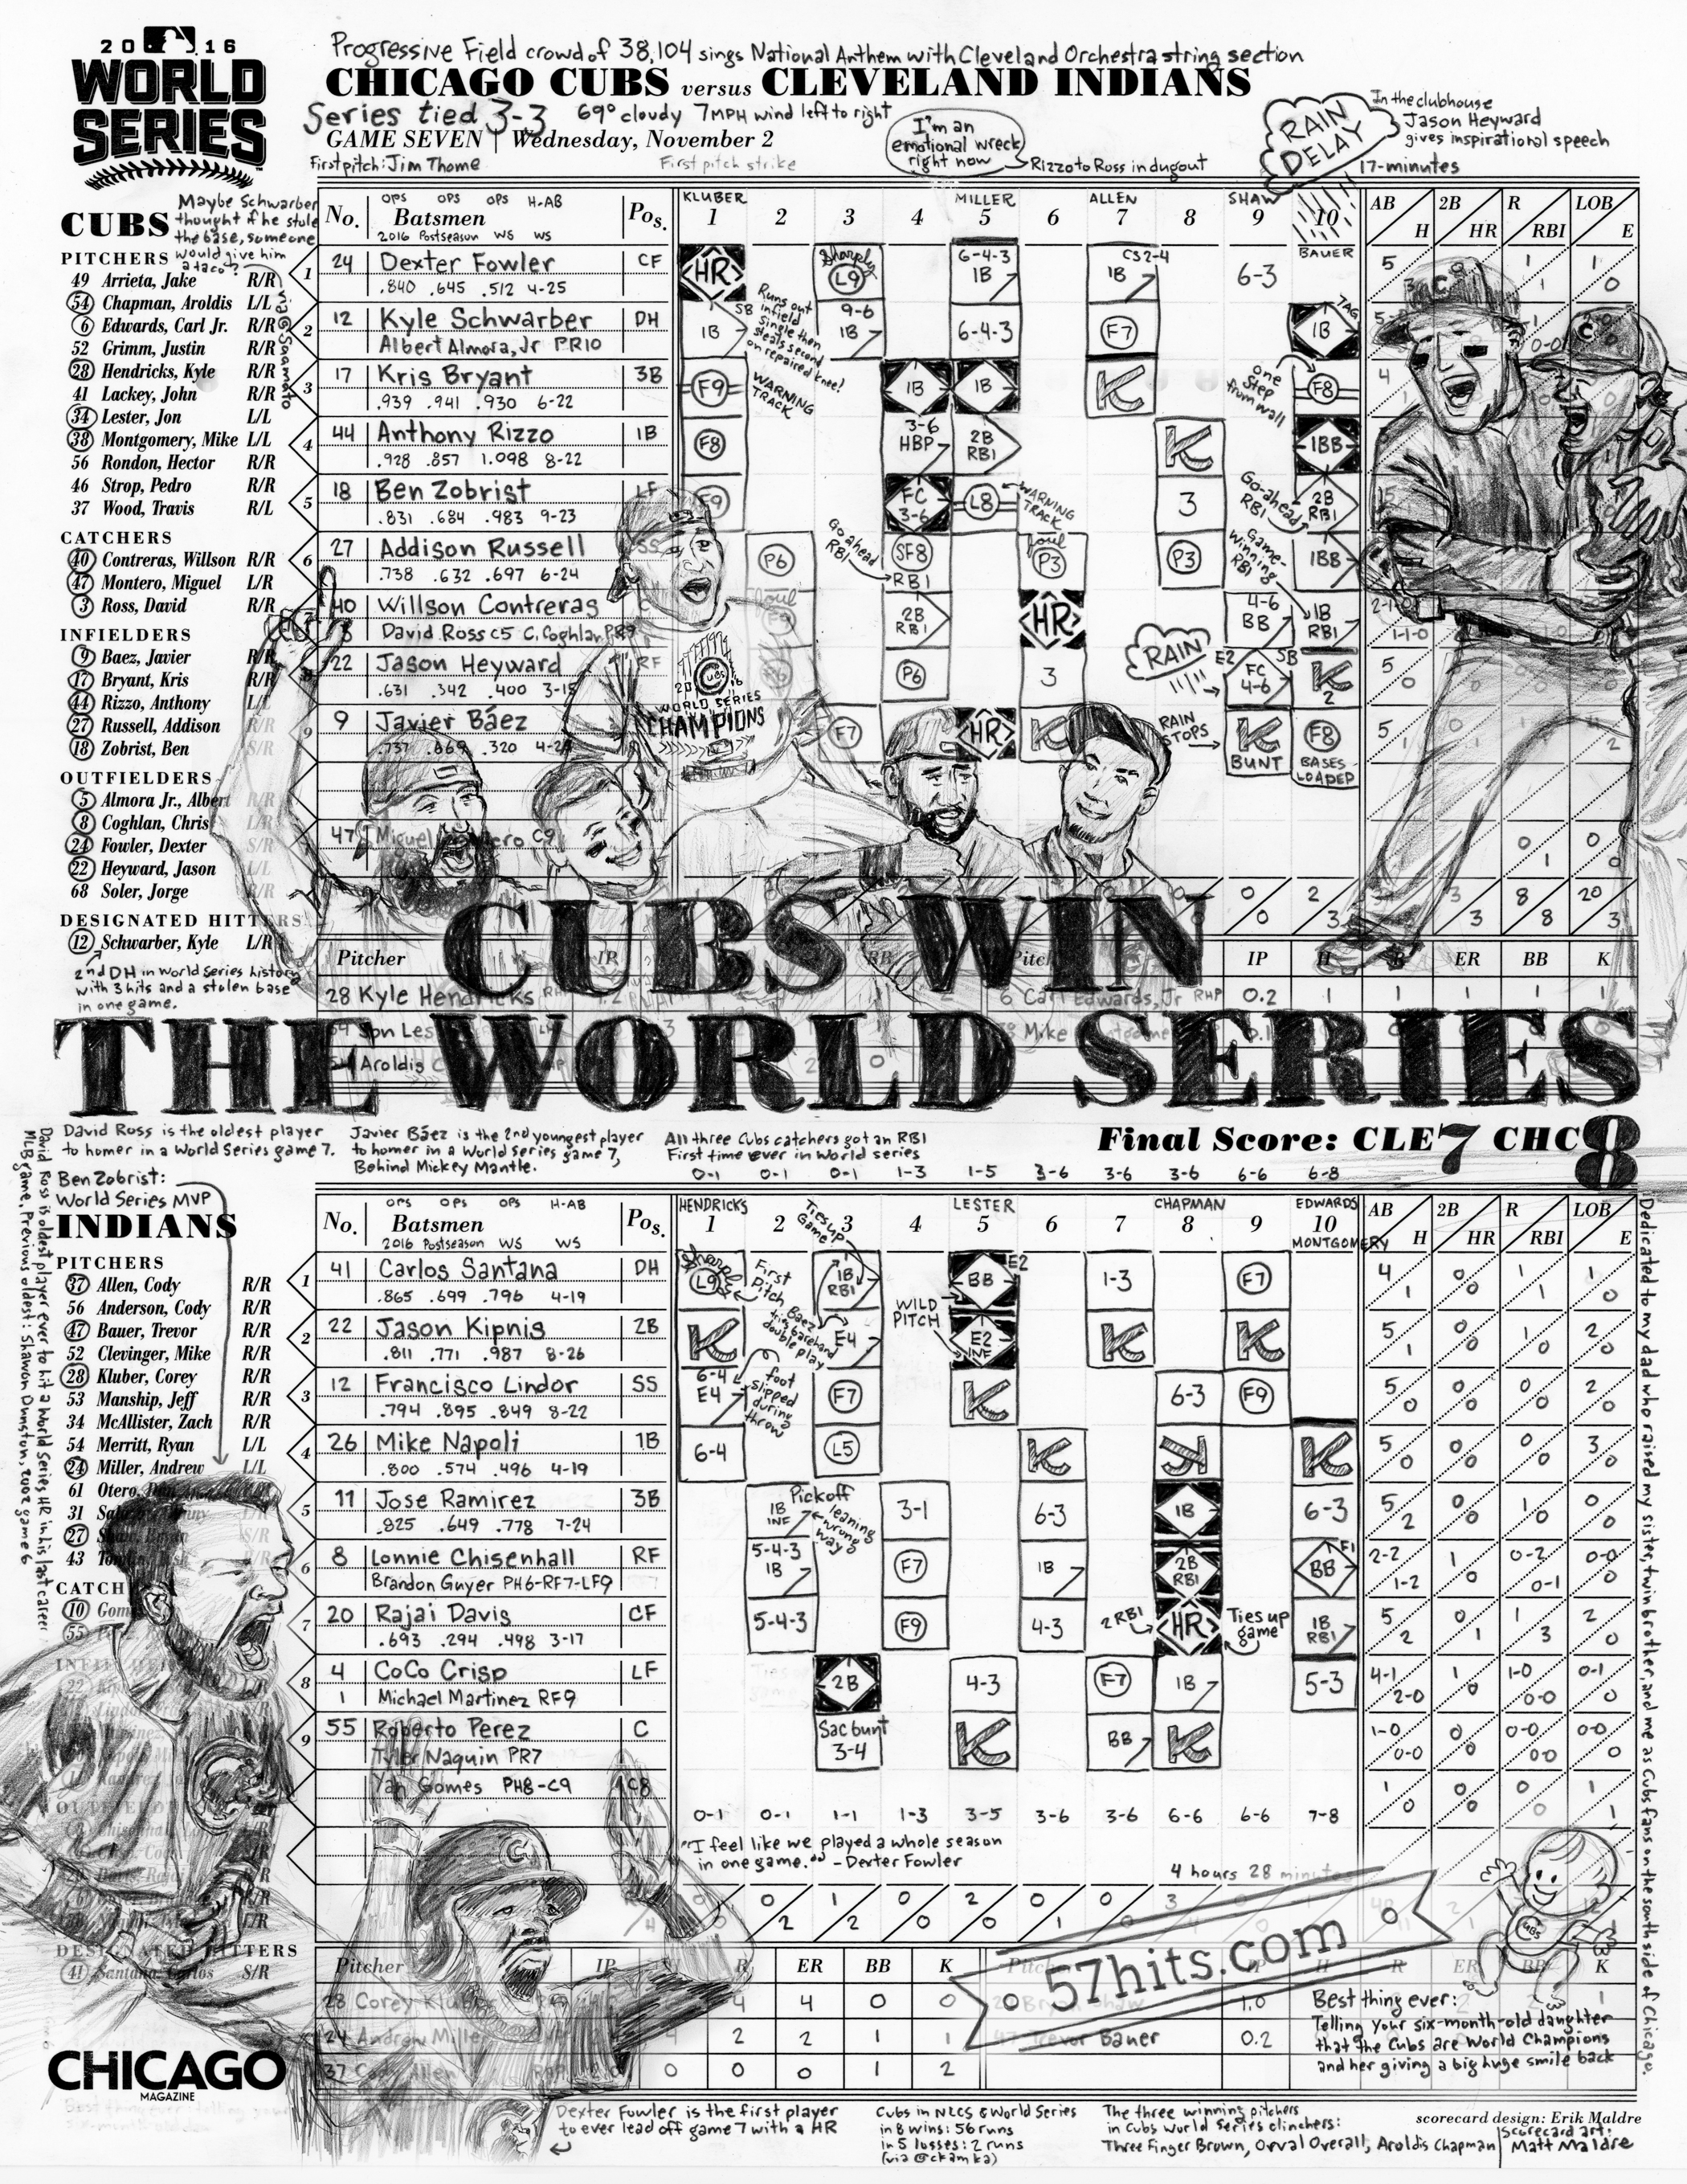 Game 7 scorecard for 2016 World Series by Matt Maldre